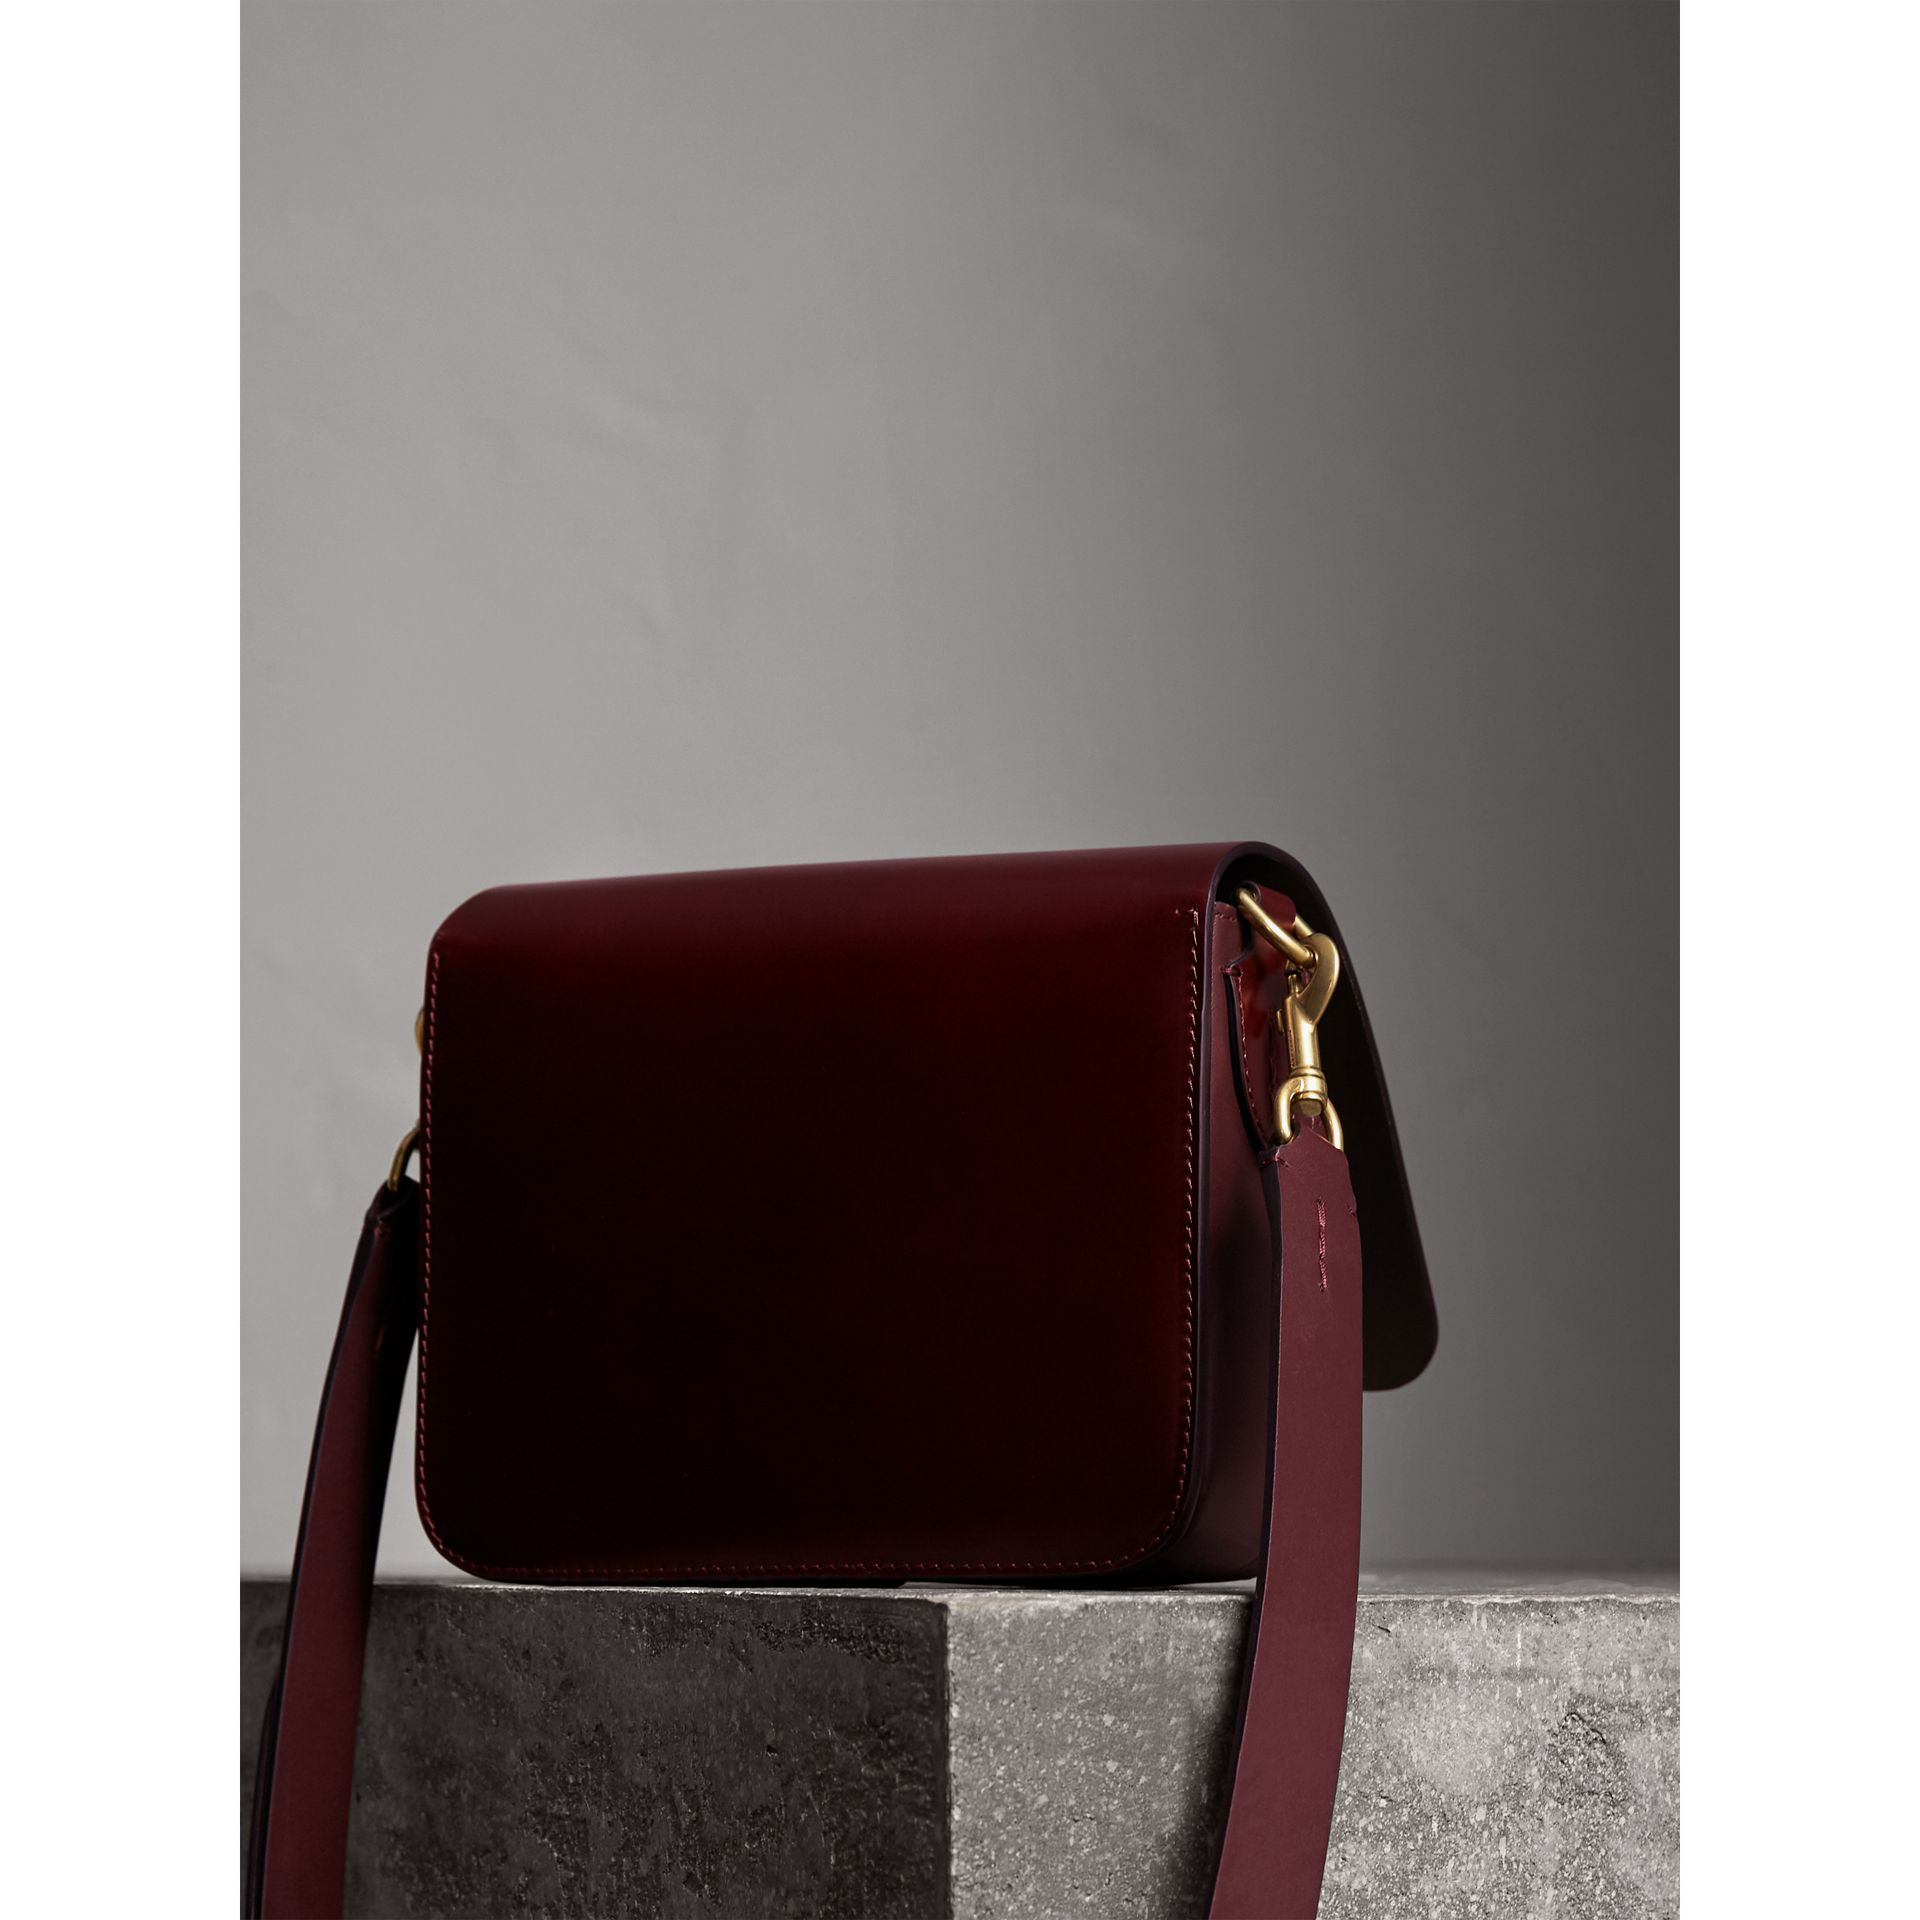 The Square Satchel in Bridle Leather in Deep Claret - Women | Burberry Hong Kong - gallery image 4